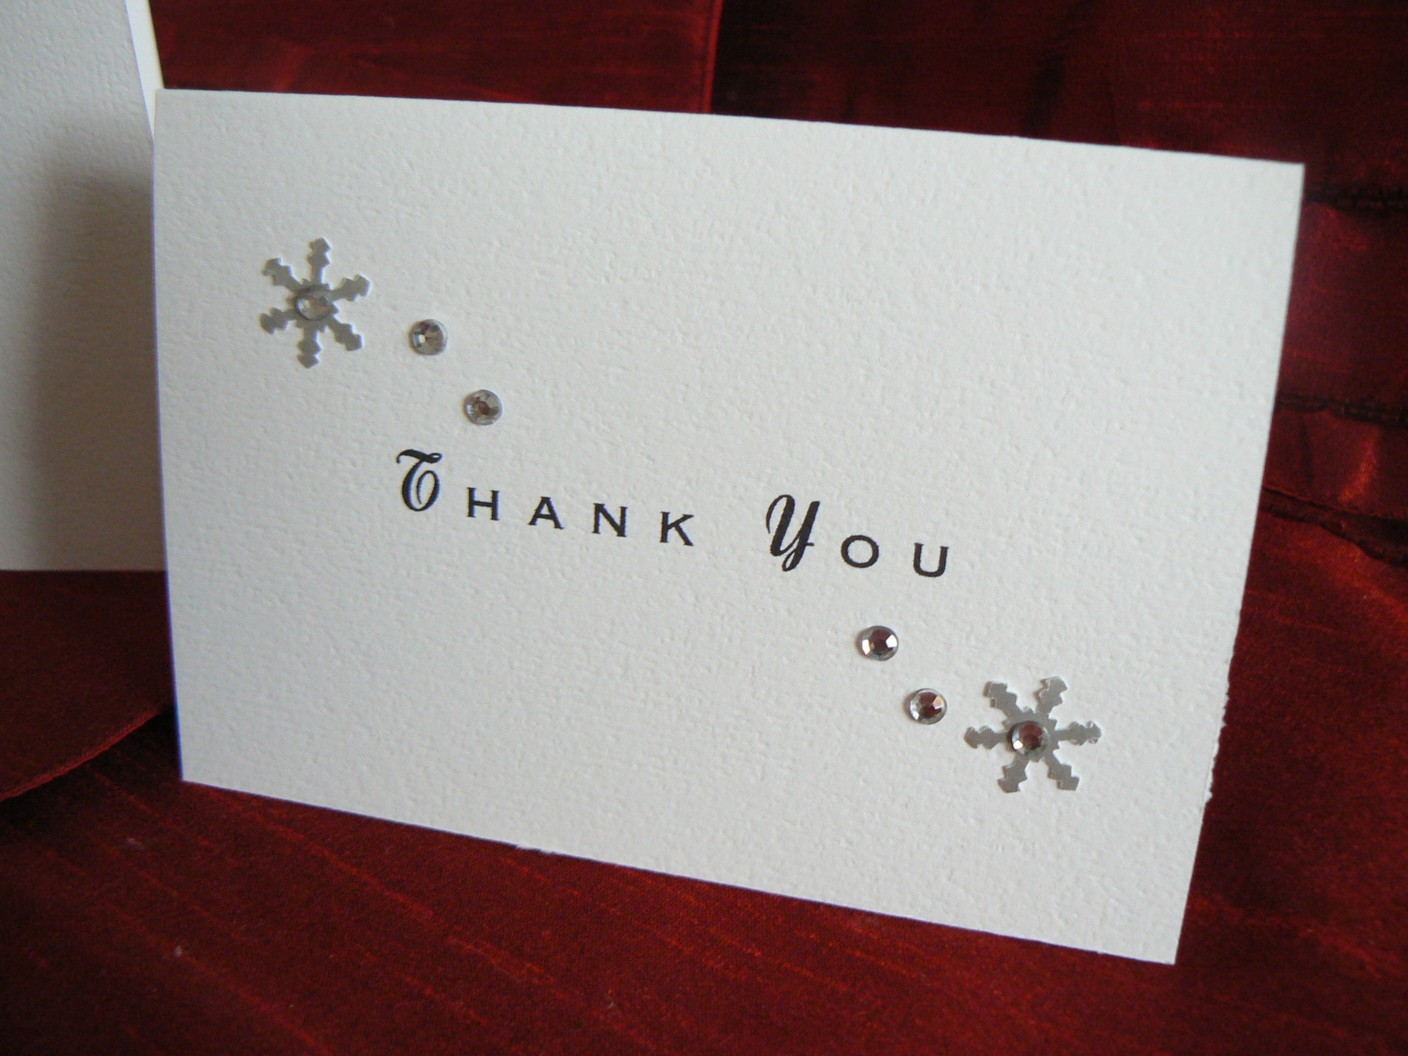 white, Wedding, Invitations, silver, invitation, Card, Crystals, Winter, You, Thank, Rhinestones, Snowflakes, Thank You Notes, Embellishment, Fanfare handmade invitations social stationery, Stationery